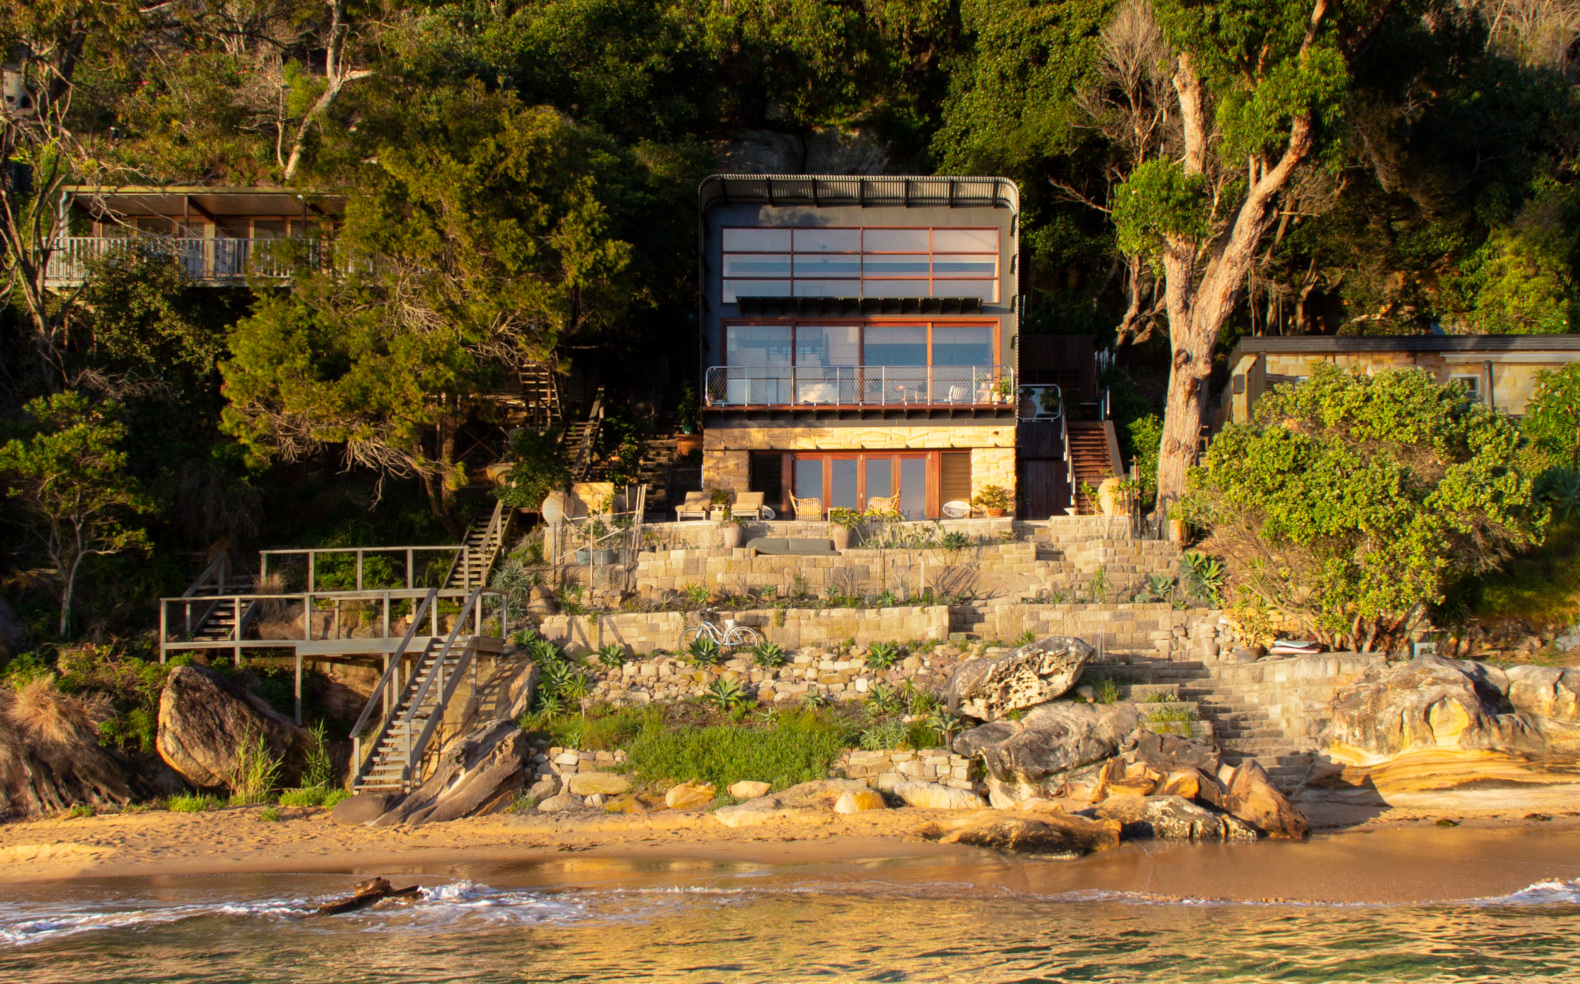 Stunning 'beach shack' on remote Australian beach is 100% self-sufficient